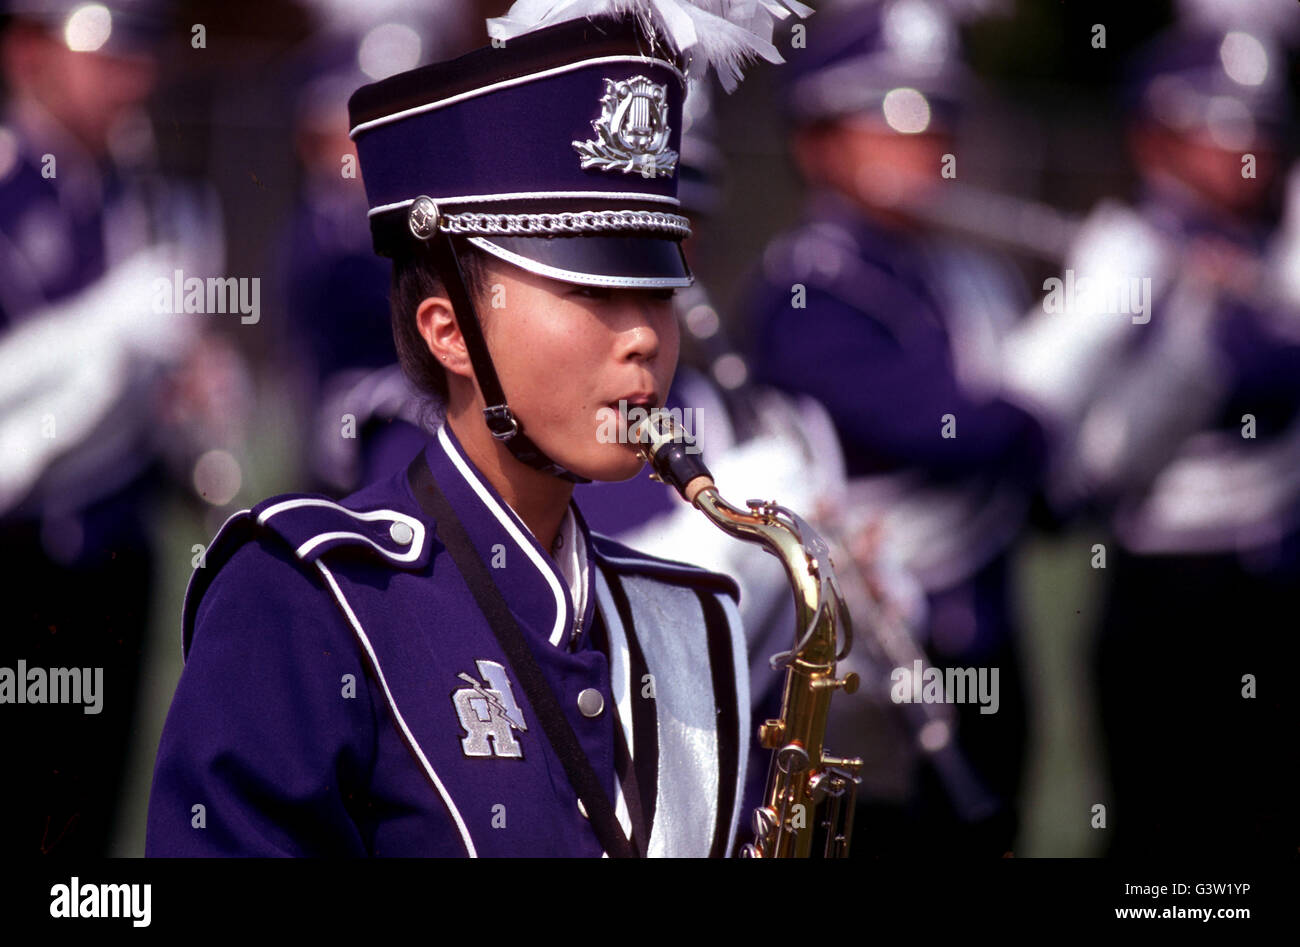 Member of marching band playing musical instrument at a halftime football game show - Stock Image